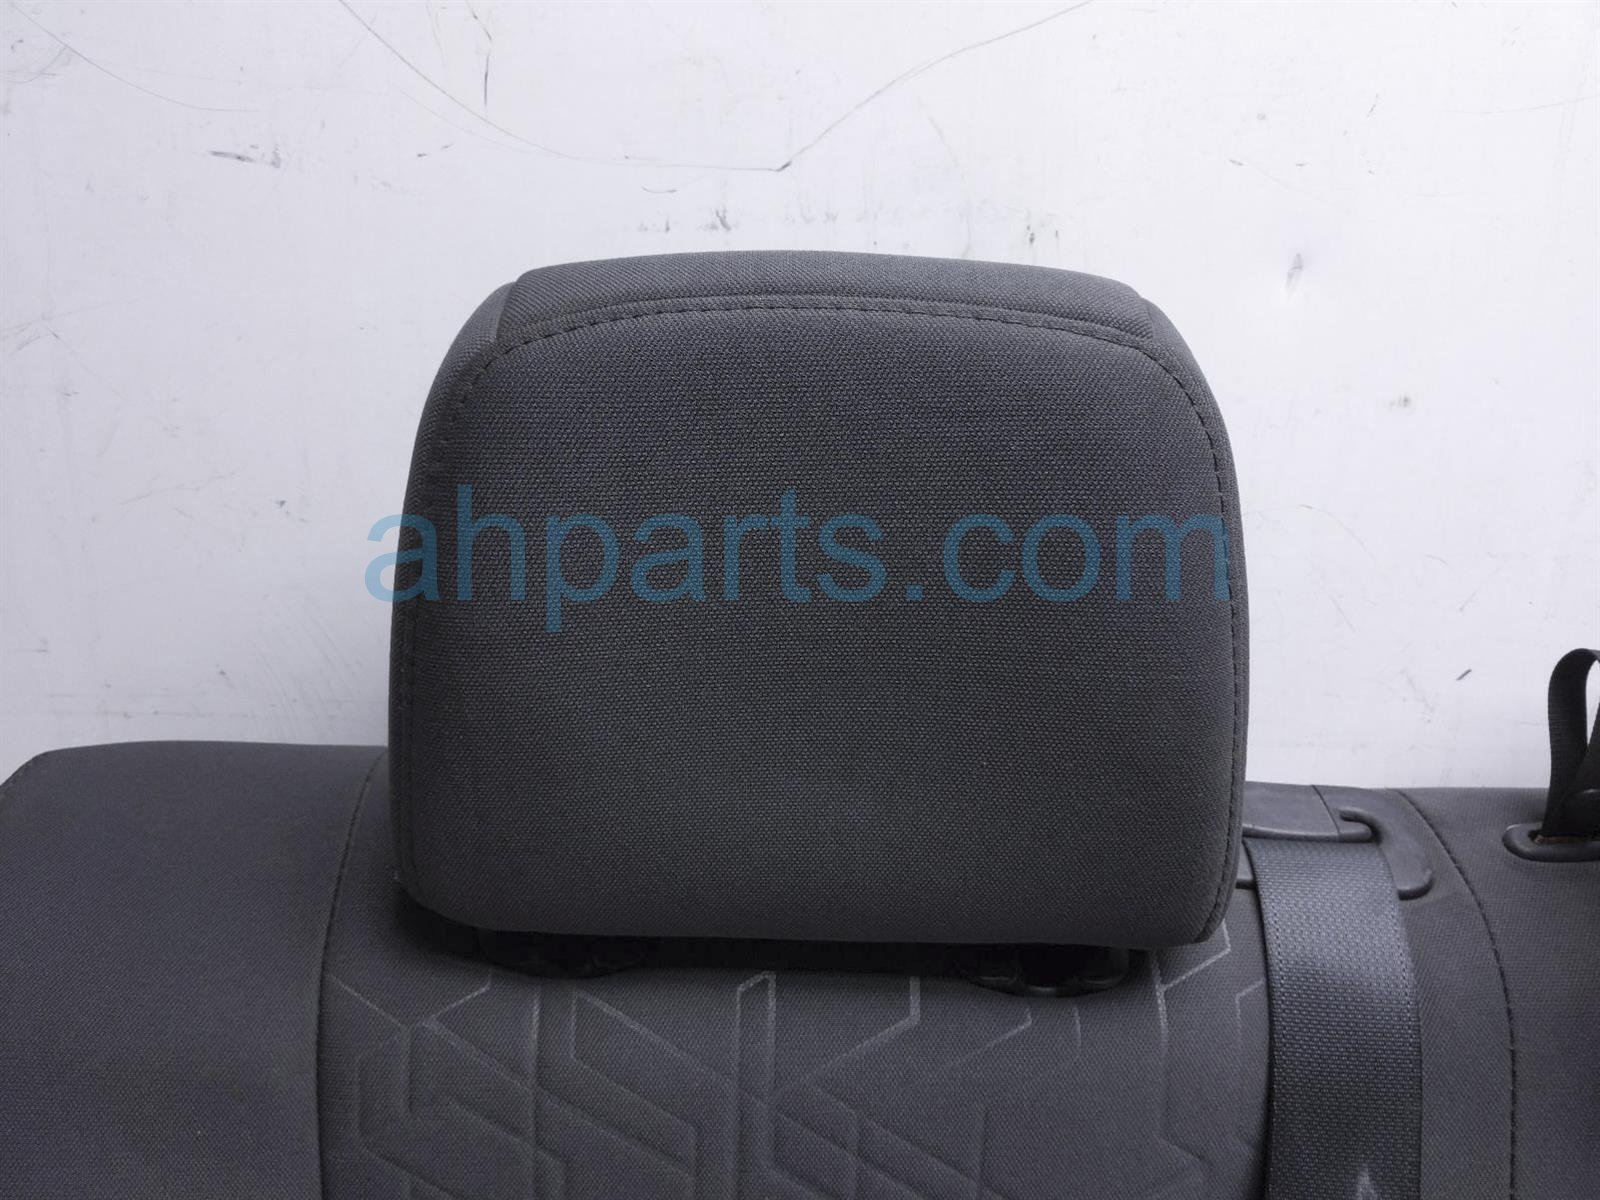 2017 Toyota Tacoma Back (2nd Row) Rear Passenger Seat Upper Portion   Black 71077 04292 C6 Replacement